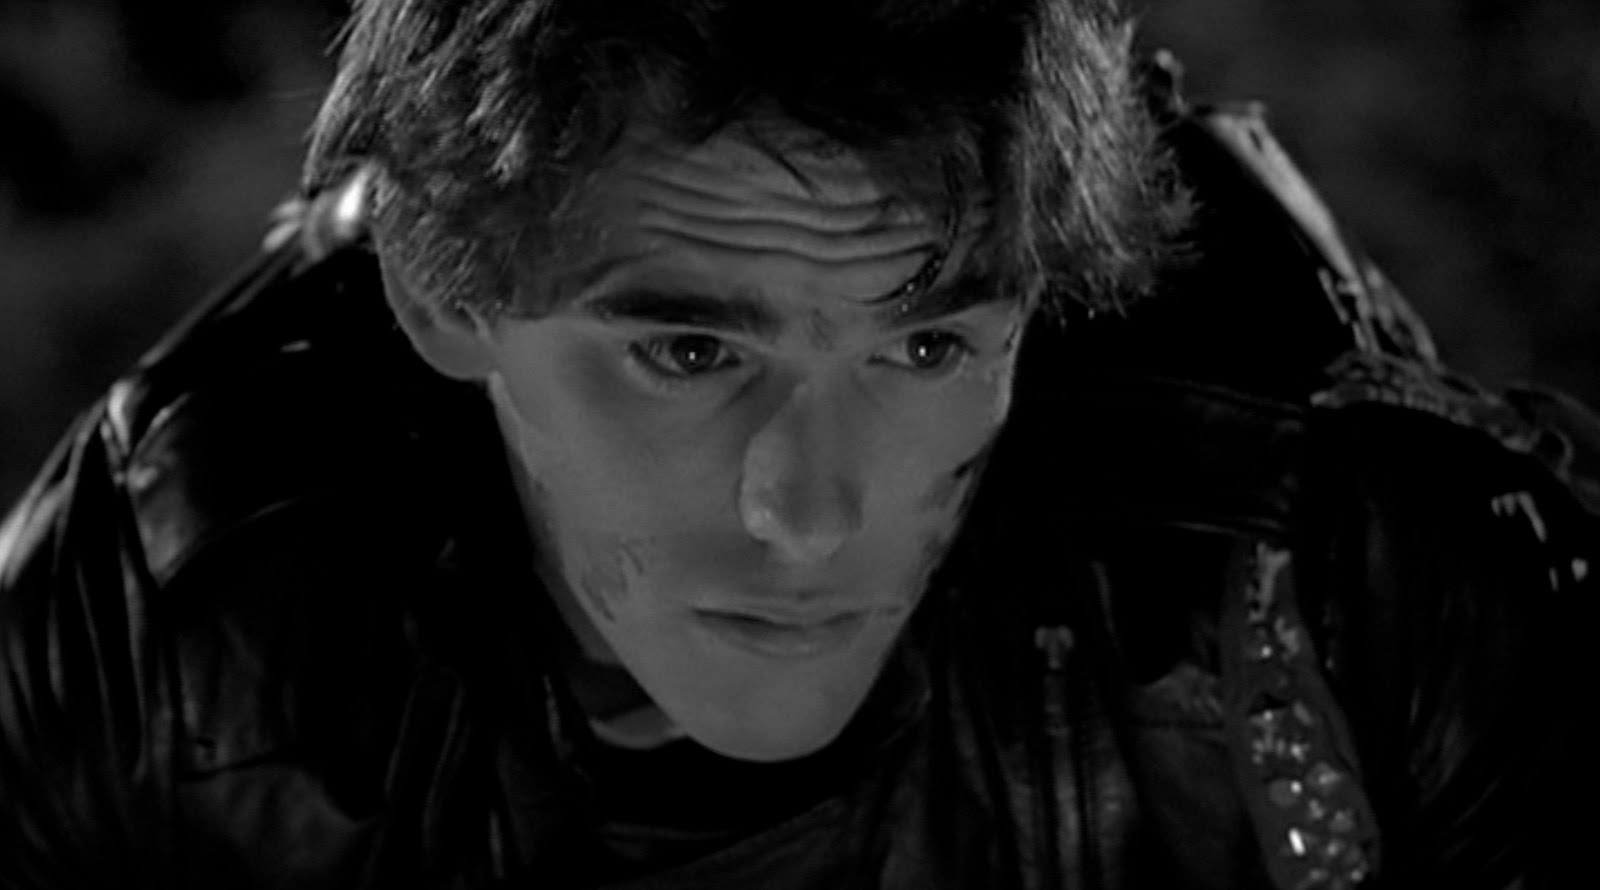 rumble fish essay rumble fish is a deeply poetic and personal essay on adolescence and